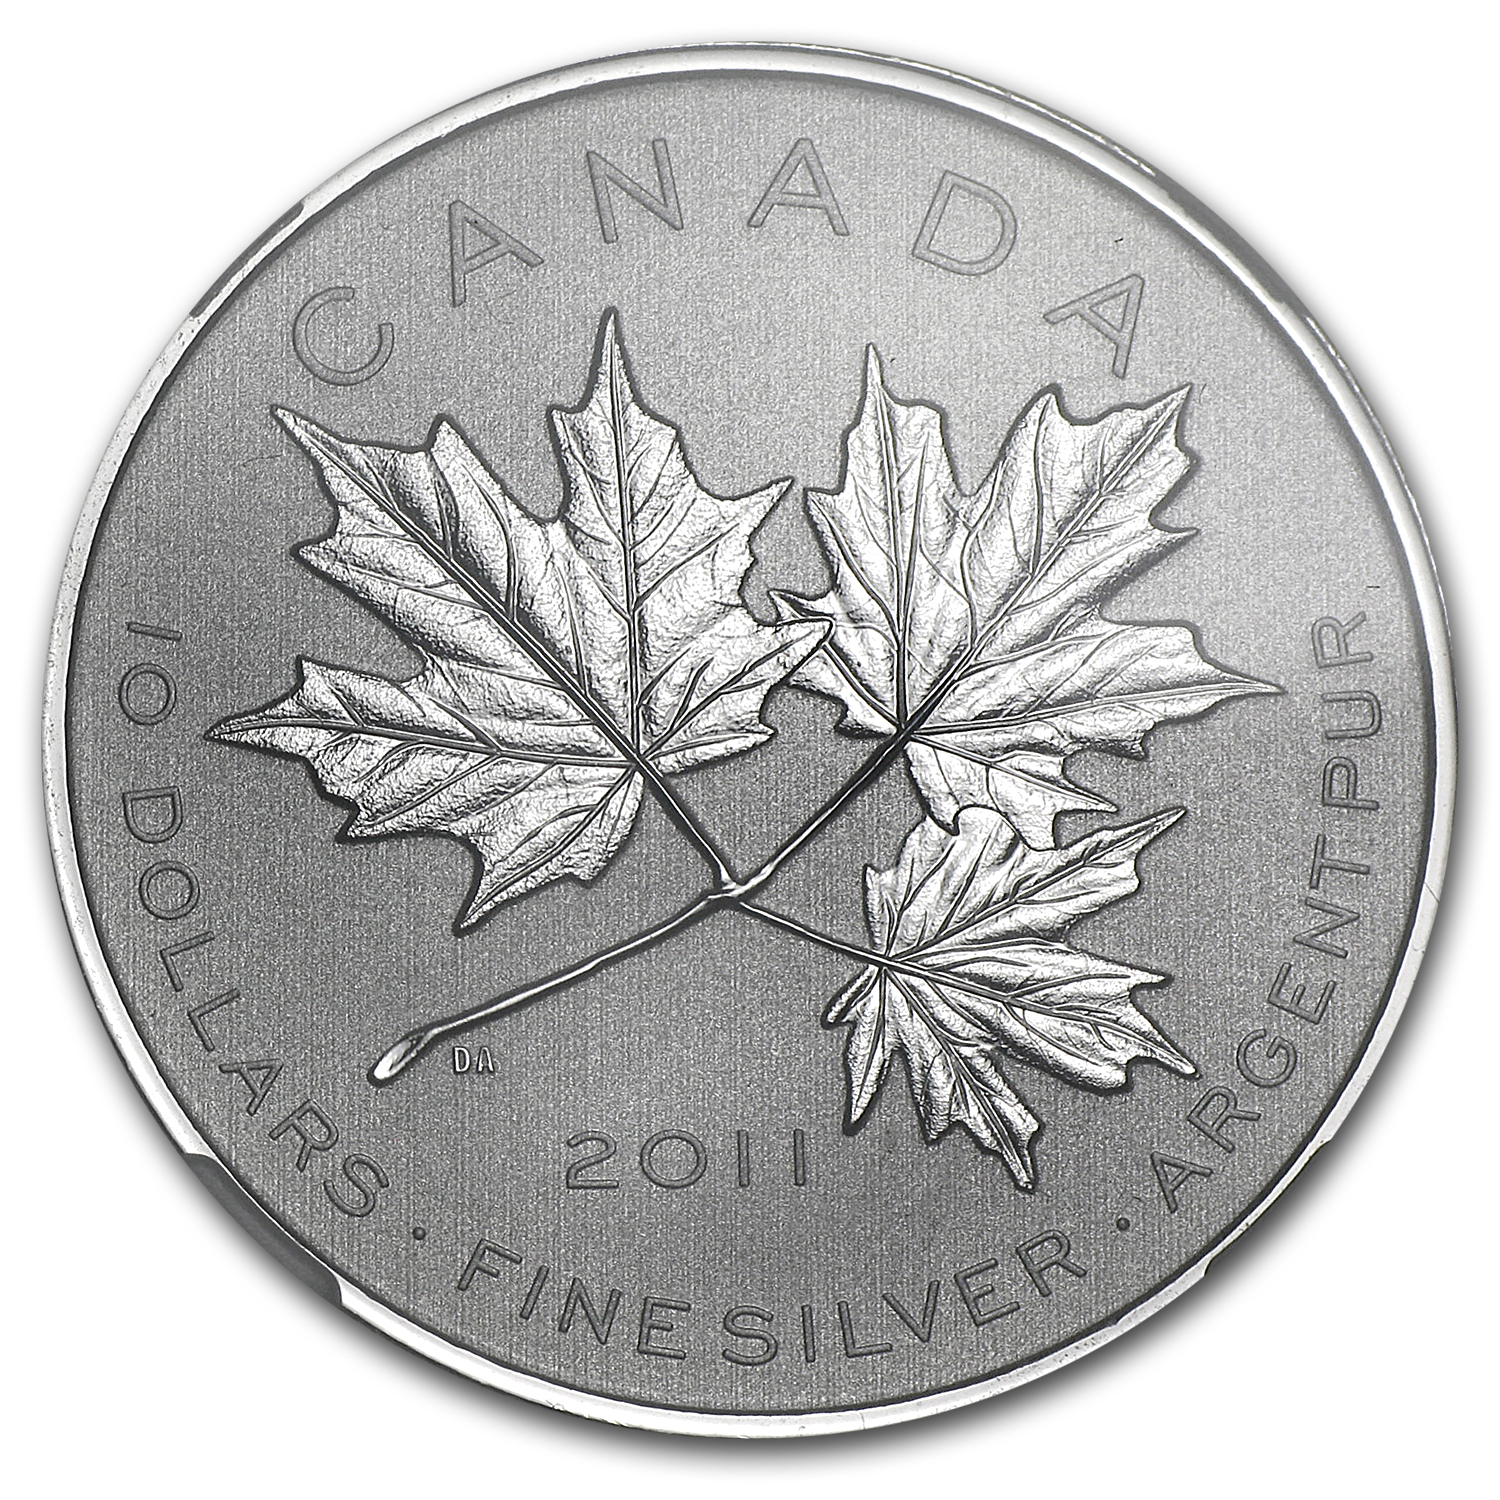 2011 1/2 oz Silver Canadian $10 Maple Leaf Forever NGC SP-69